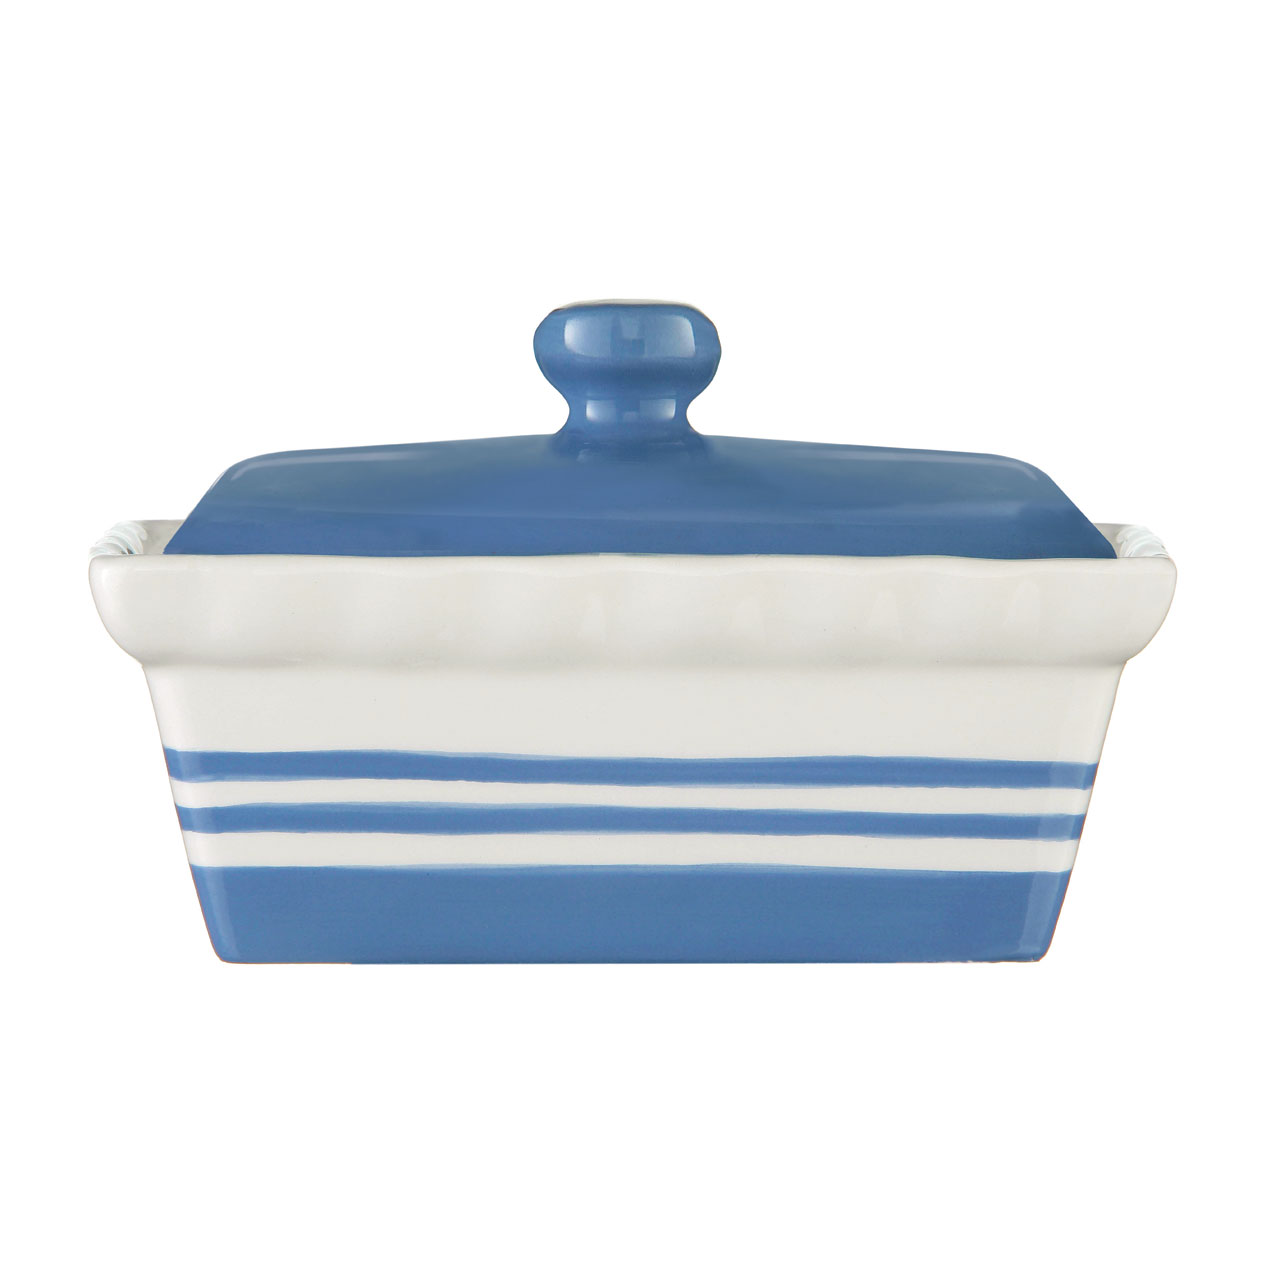 NEW CORNISH BLUE STRIPE CERAMIC TEA COFFEE SUGAR STORAGE